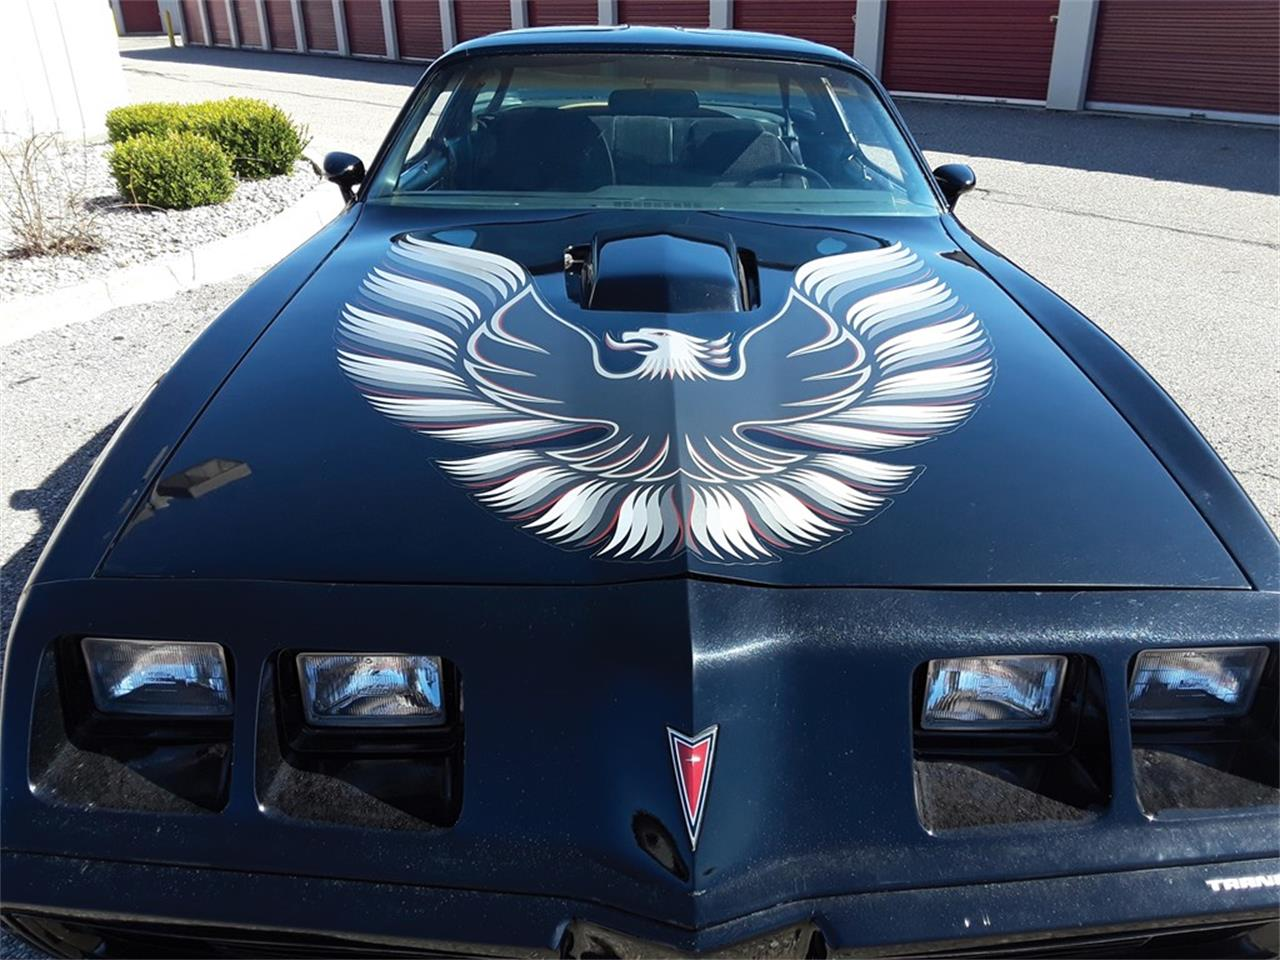 1979 Pontiac Firebird Trans Am (CC-1238557) for sale in Auburn, Indiana